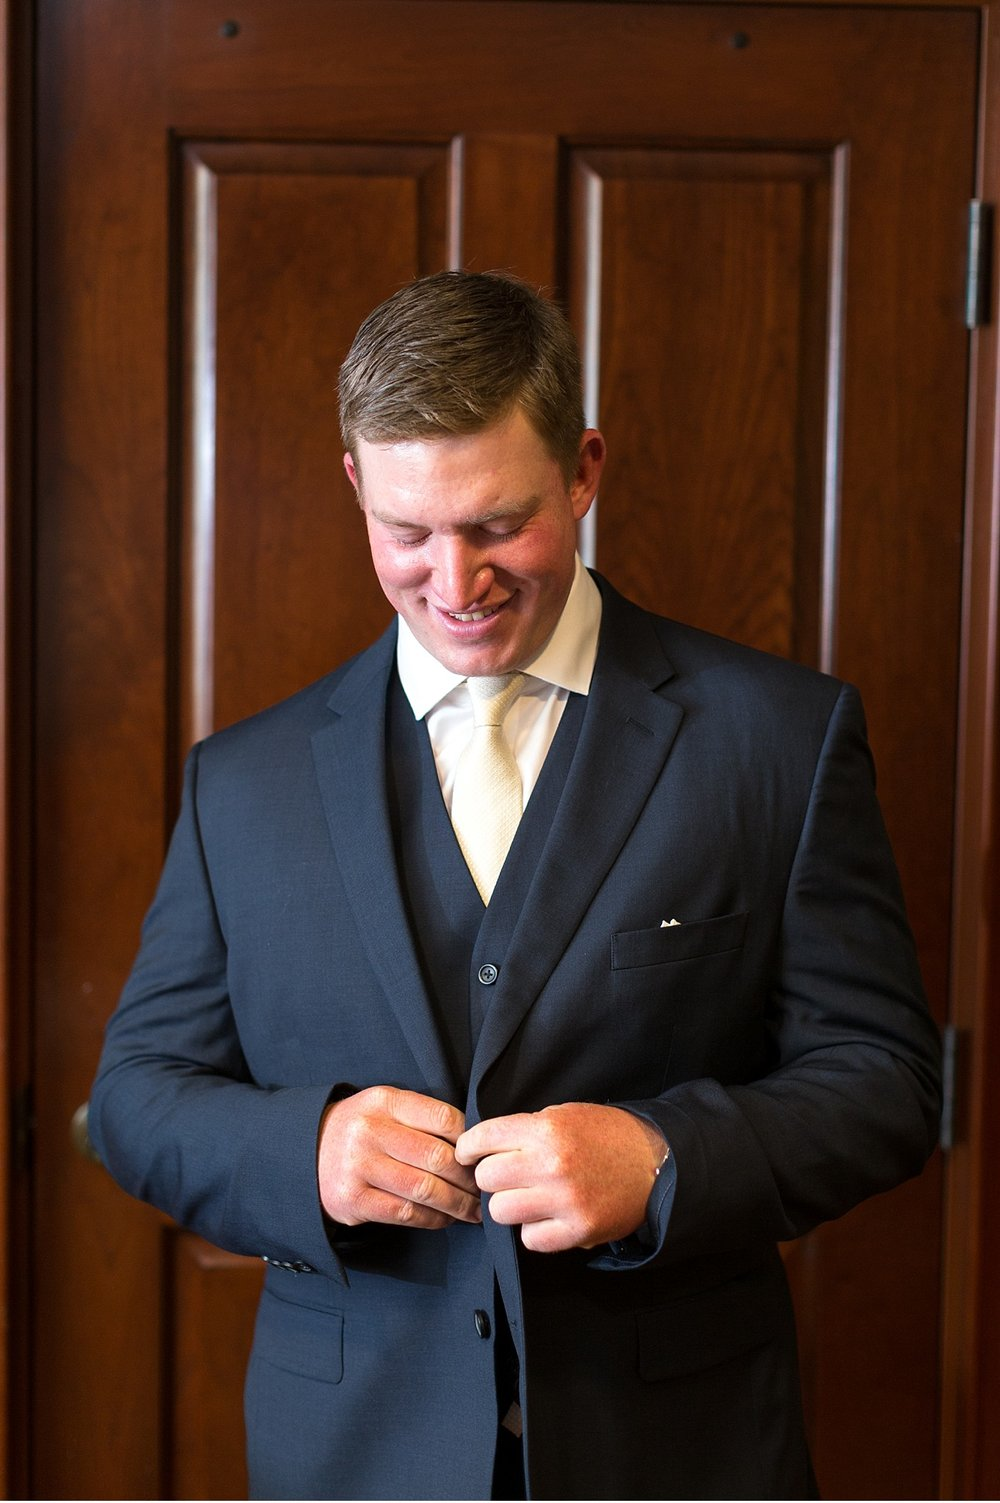 Groom getting ready at Hershey Gardens Hershey Country Club Summer beautiful wedding photography_1552.jpg